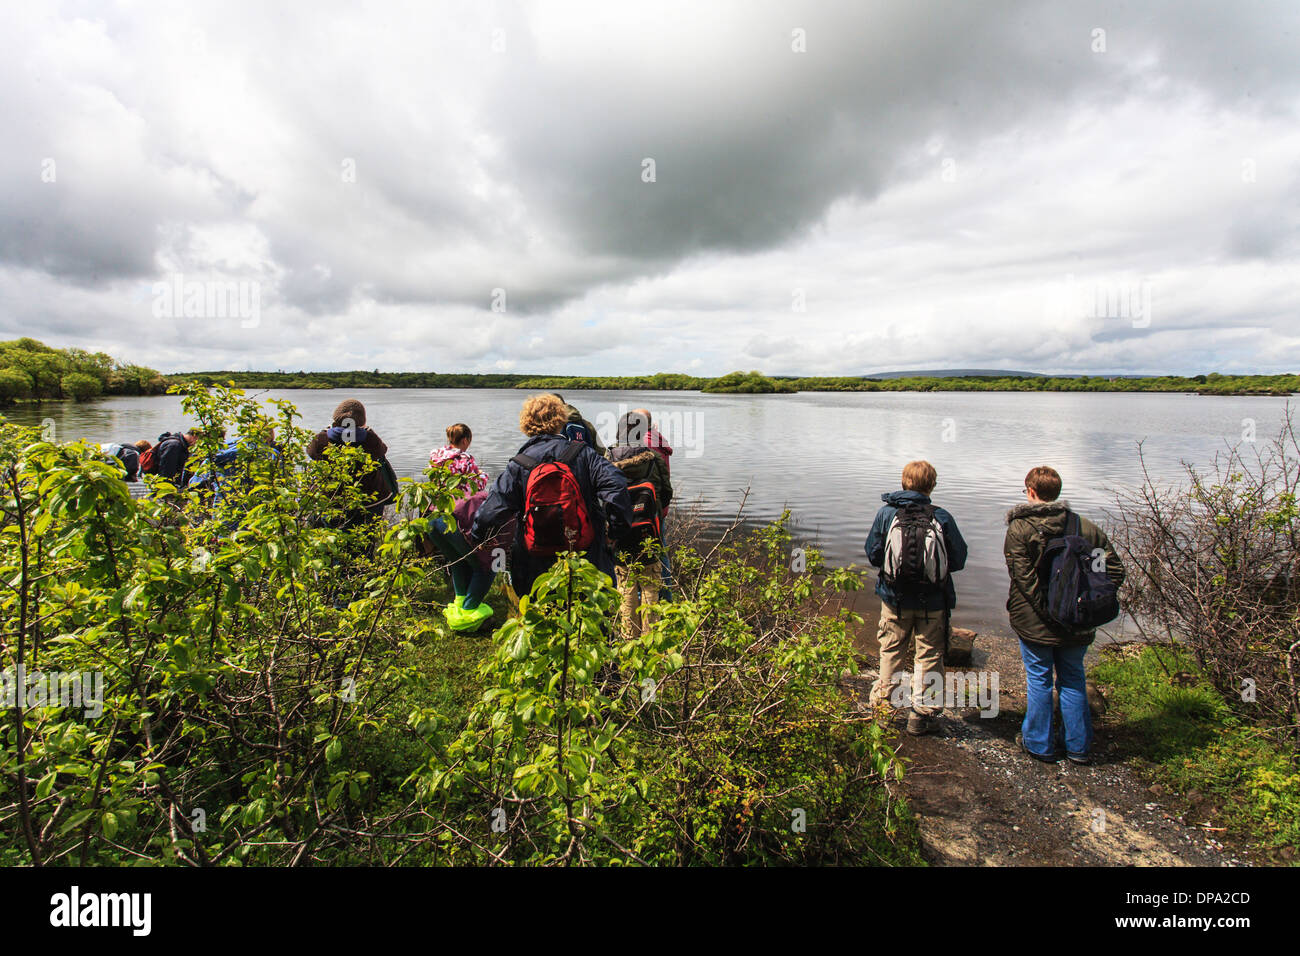 A group of walkers overlooking a lake under grey cloudy skies at the Burren National Park, County Clare, Ireland, - Stock Image